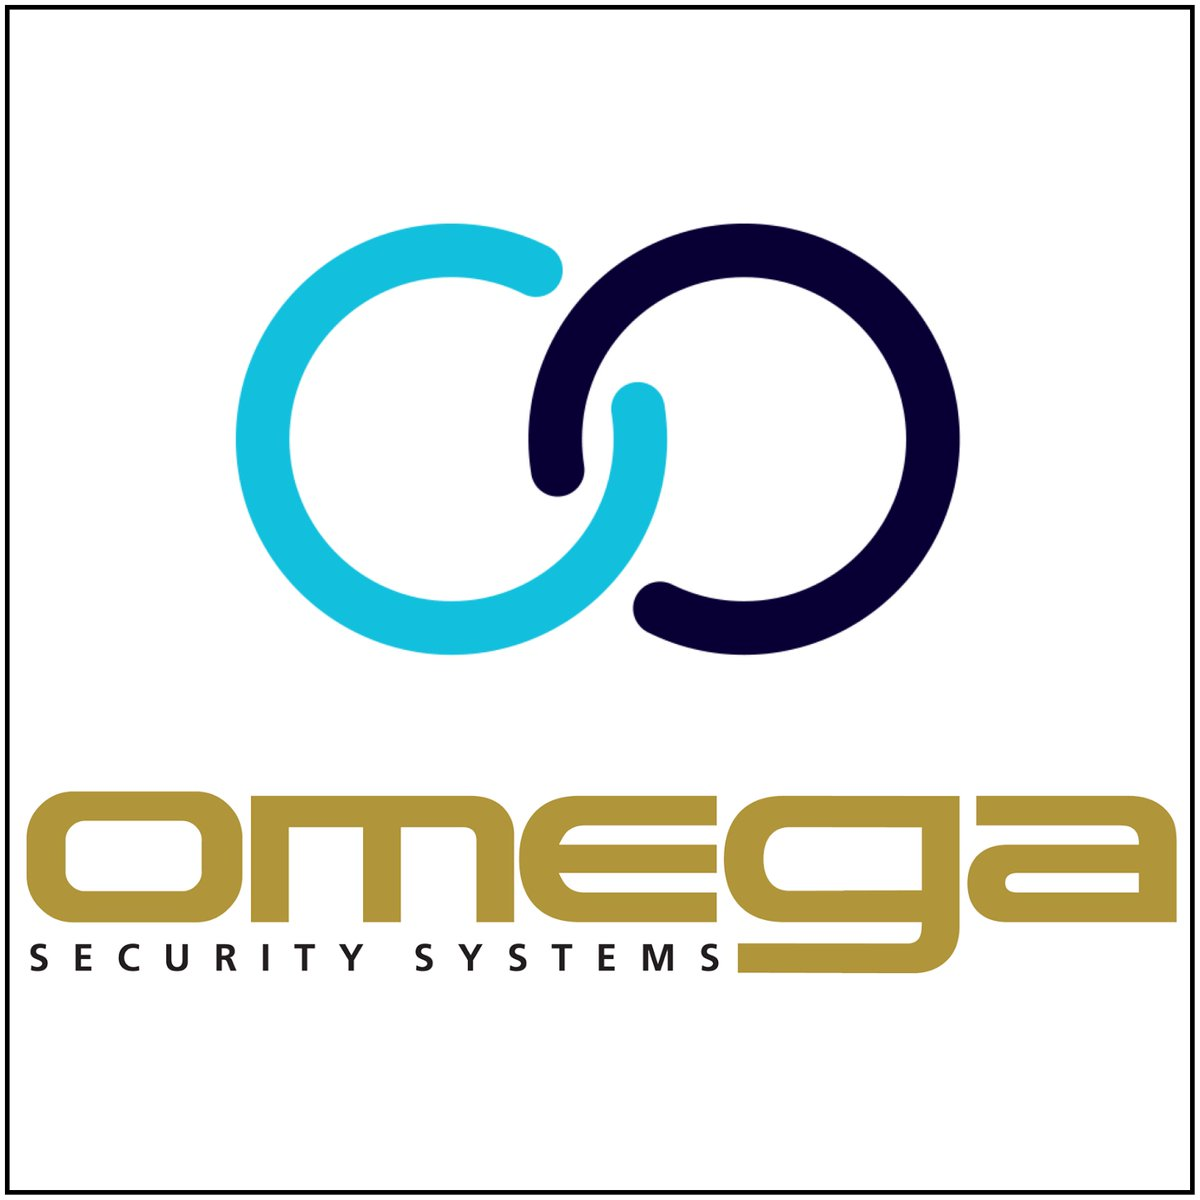 Great to meet up with our Reseller Partner @OmegaSecurity1 this week to talk through all our plans for the year. For more info about our Partnership Program call 0330 113 2130 or see  https:// bit.ly/2RpfyvV  &nbsp;    #facialrecognition #partnerships #planning #reseller #accesscontrol<br>http://pic.twitter.com/vhHUDIopyk